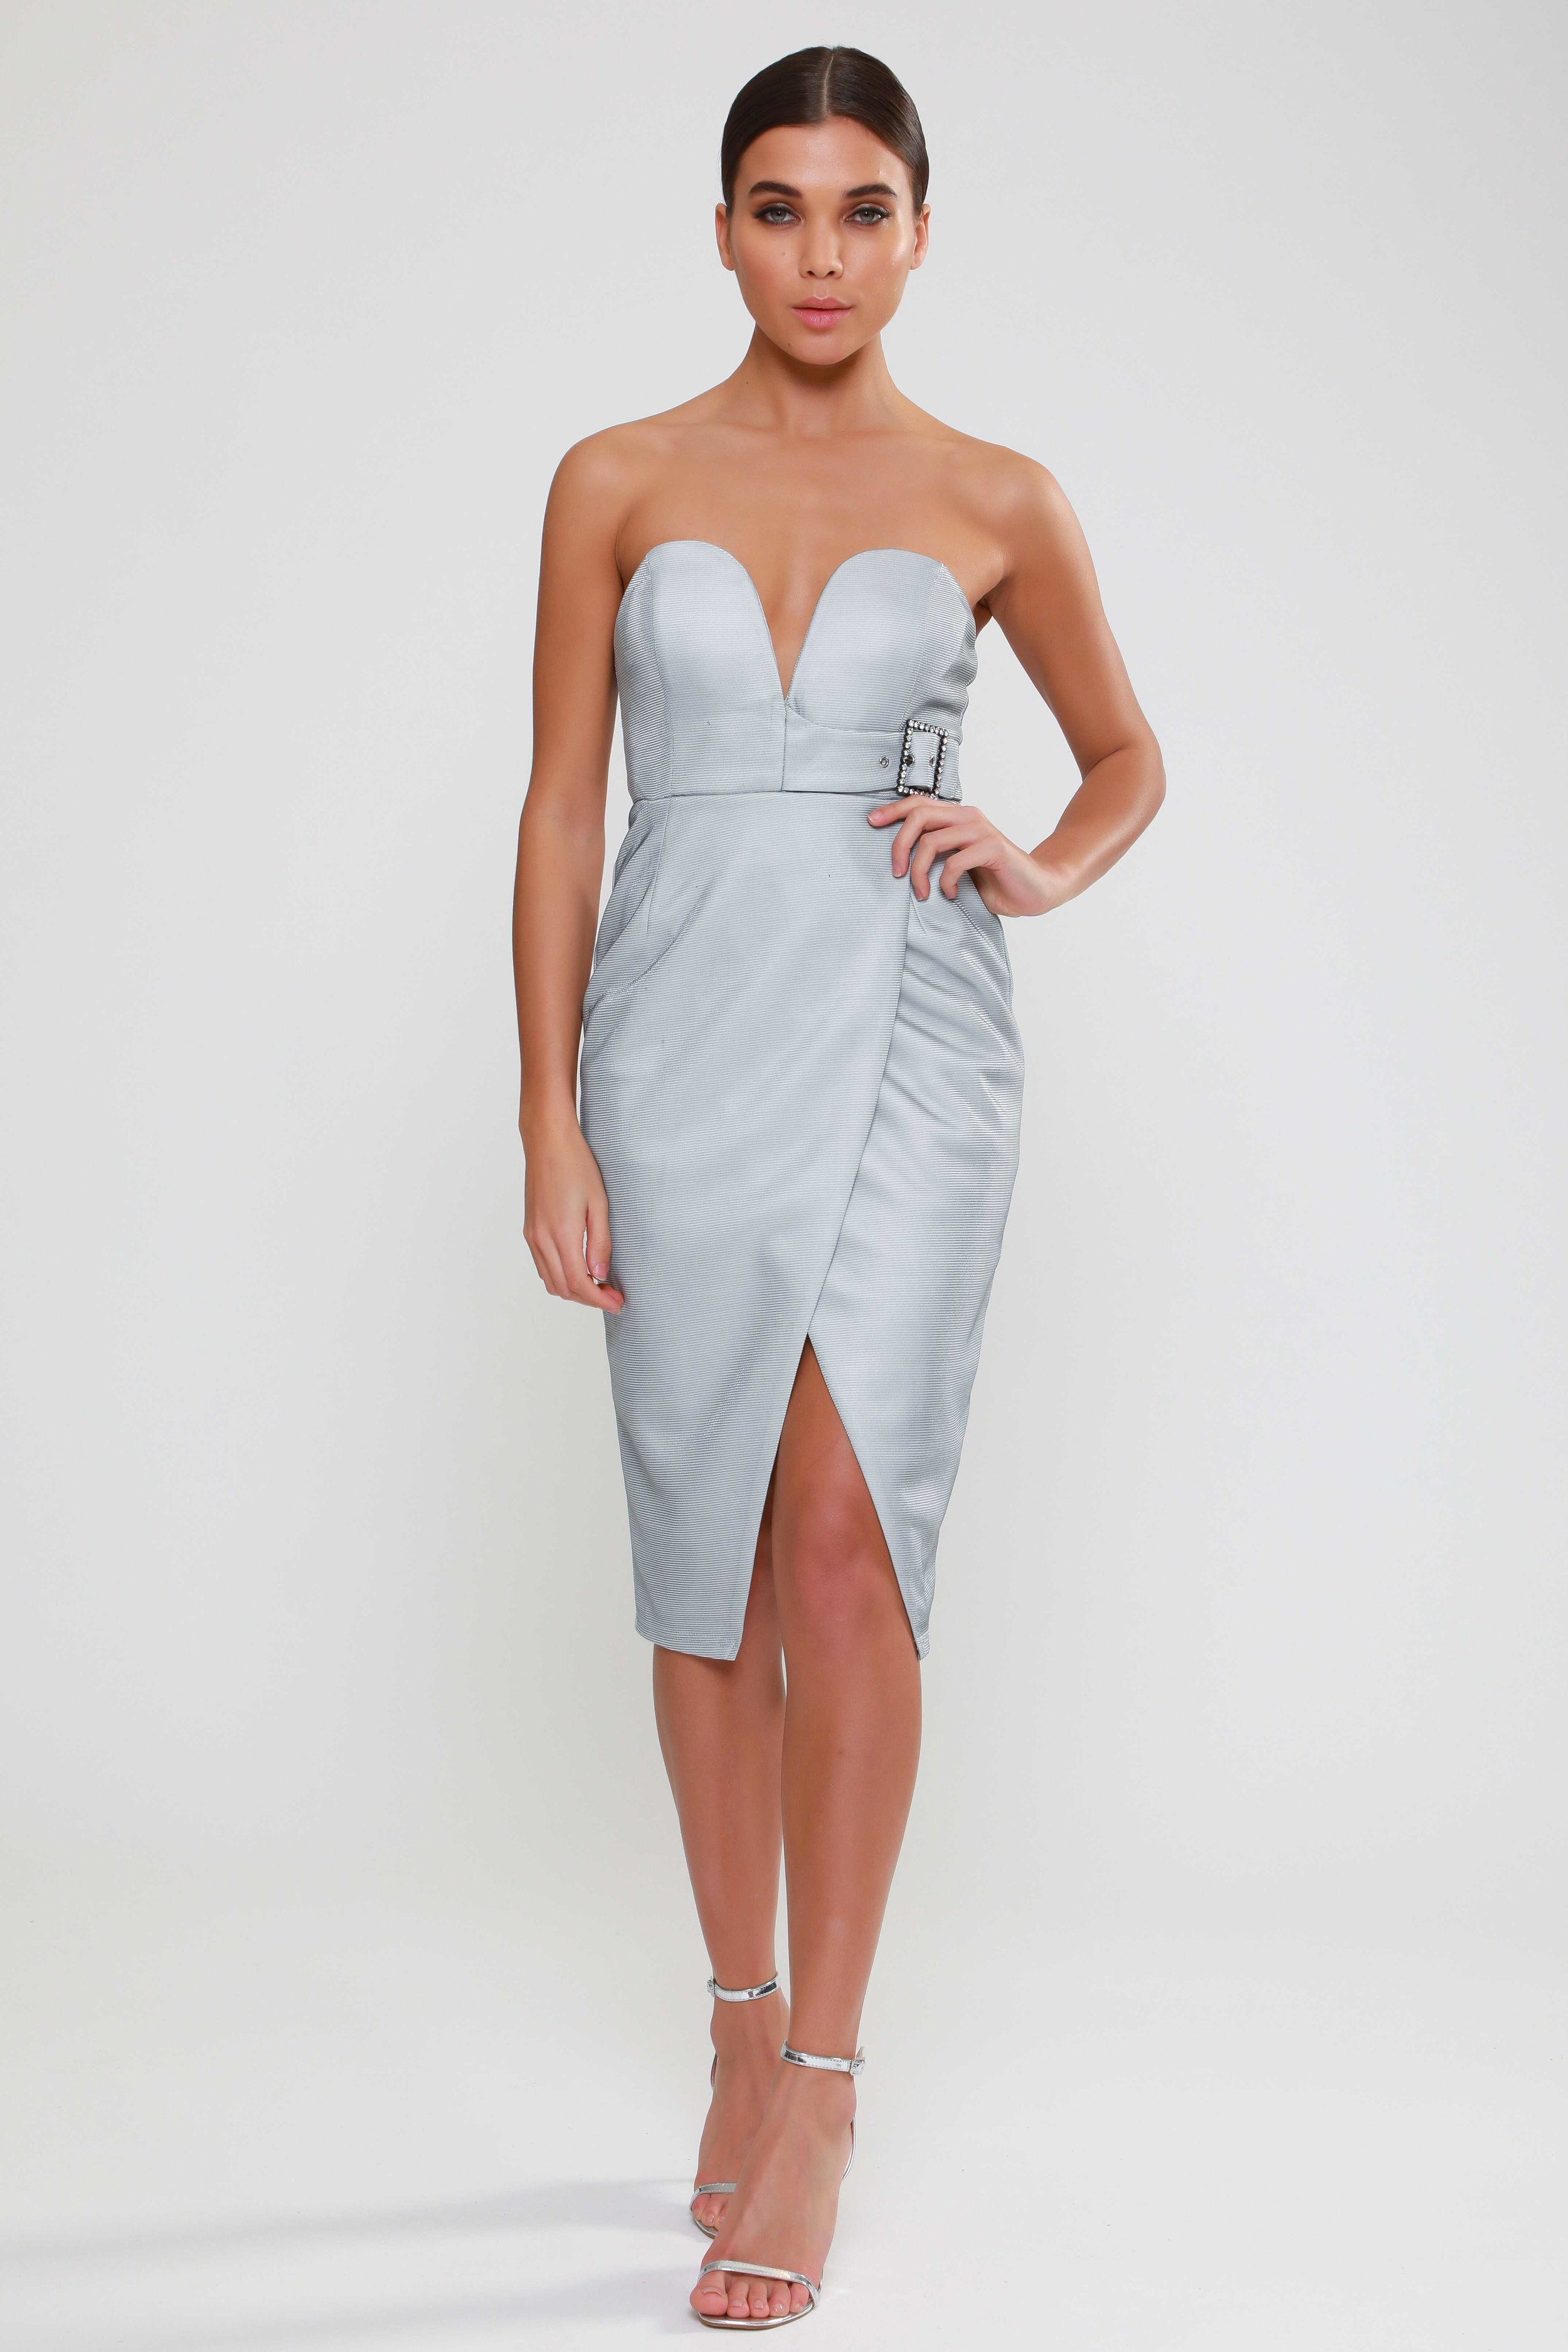 Buckle Wrap Front  Midi Dress   £75.00